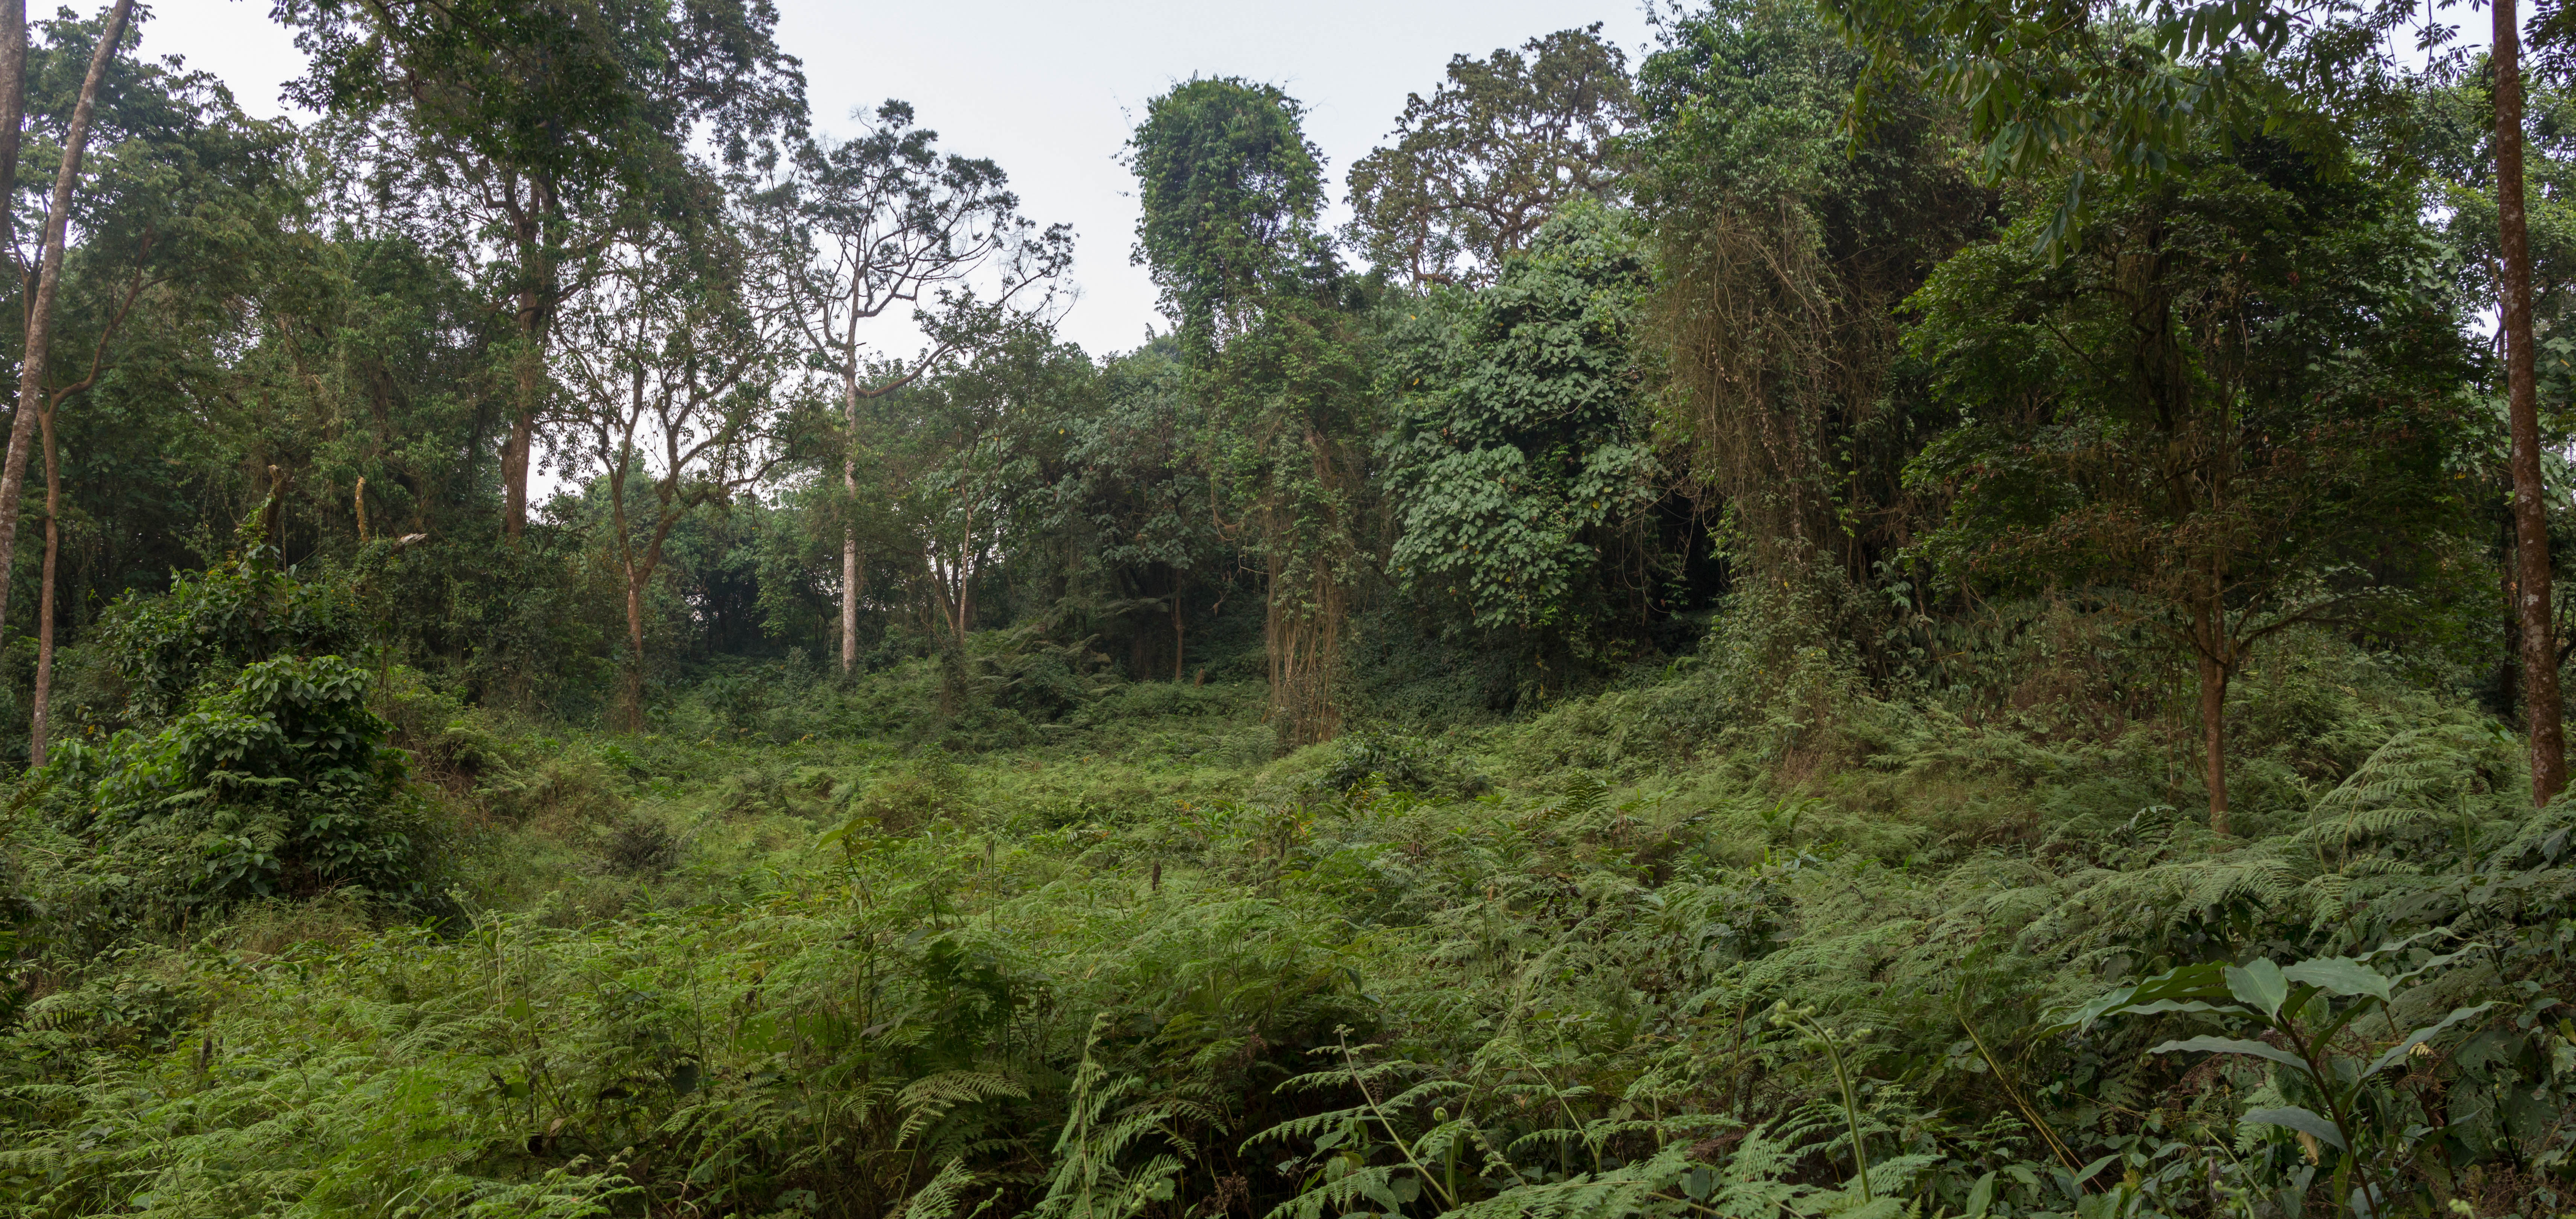 Influence of extensive natural disturbance by elephants on rainforests of Mt. Cameroon. Jan Mertens